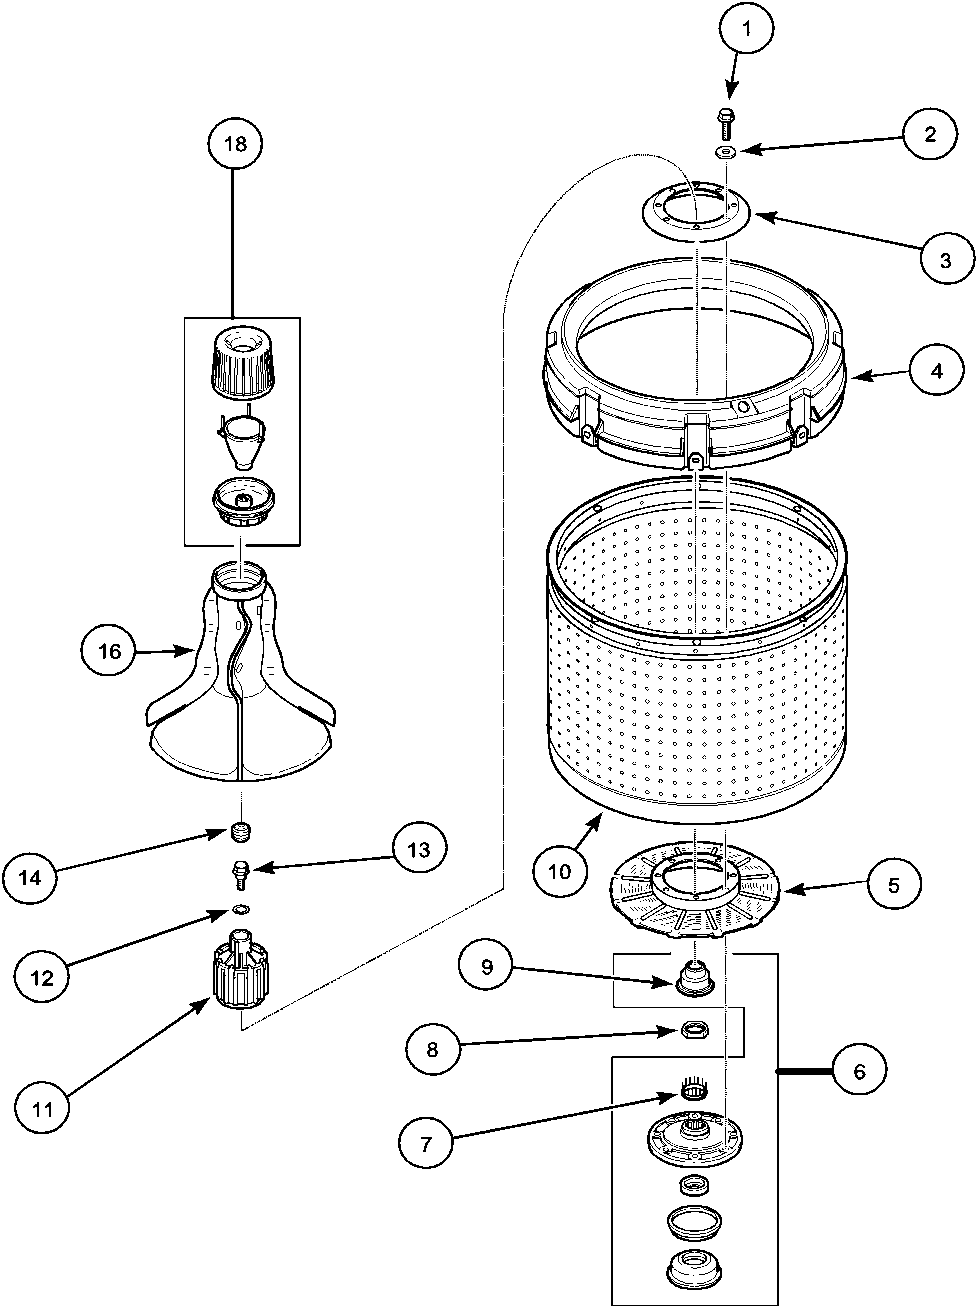 LWA40AW2 Top Loading Washer Agitator, drive bell and wash tub Parts diagram